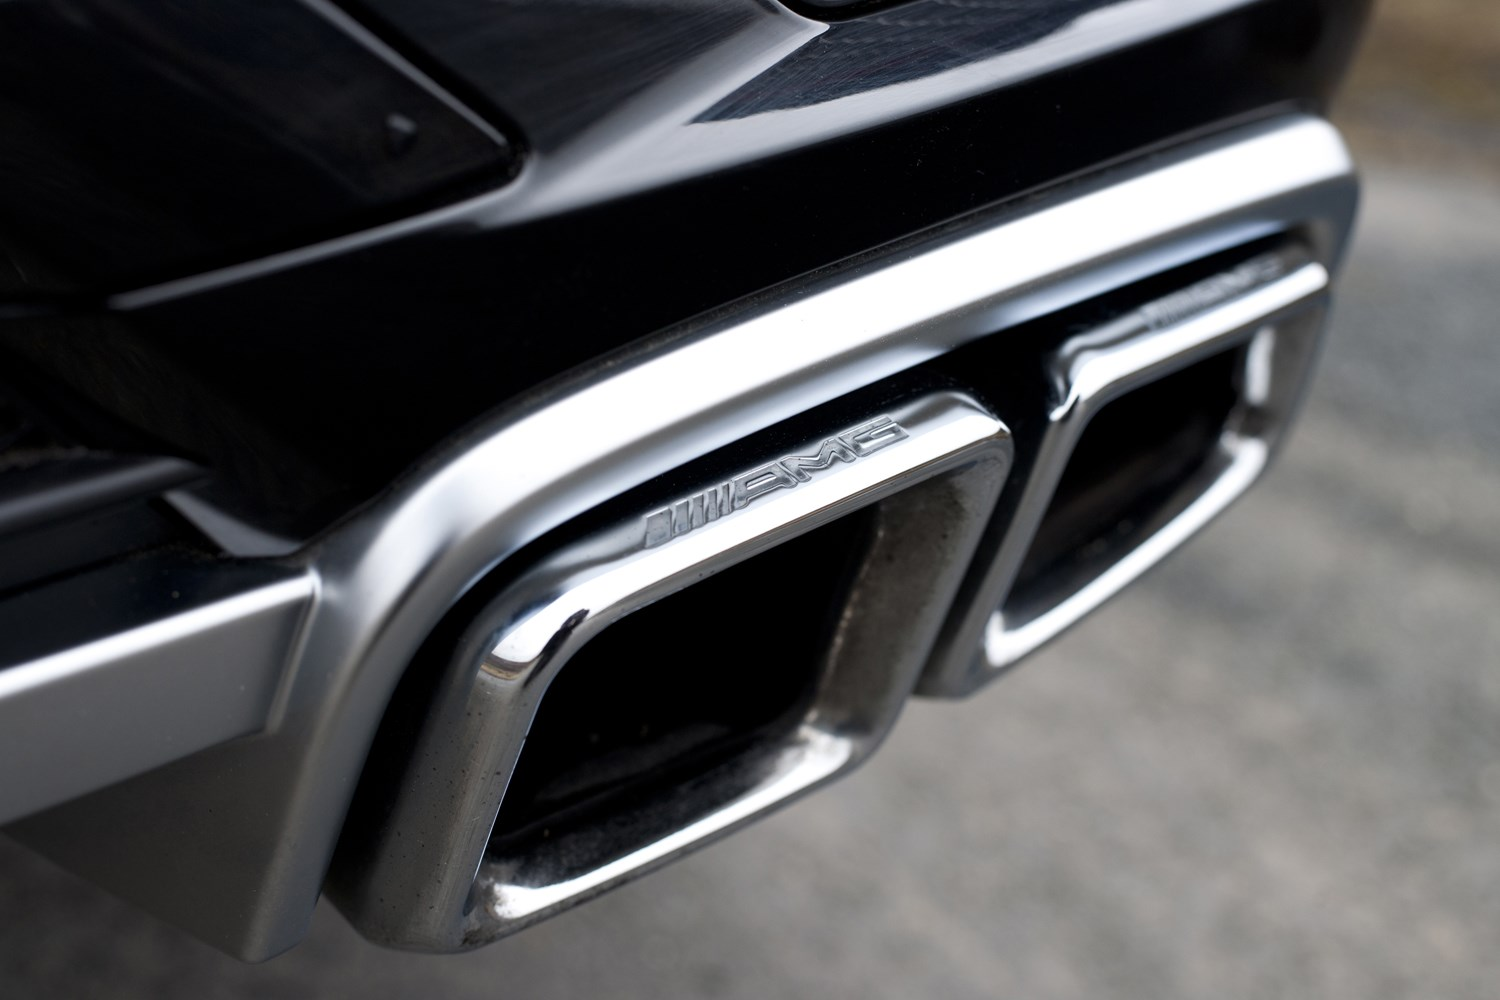 Mercedes benz m class amg 2012 2015 features for Mercedes benz amg accessories